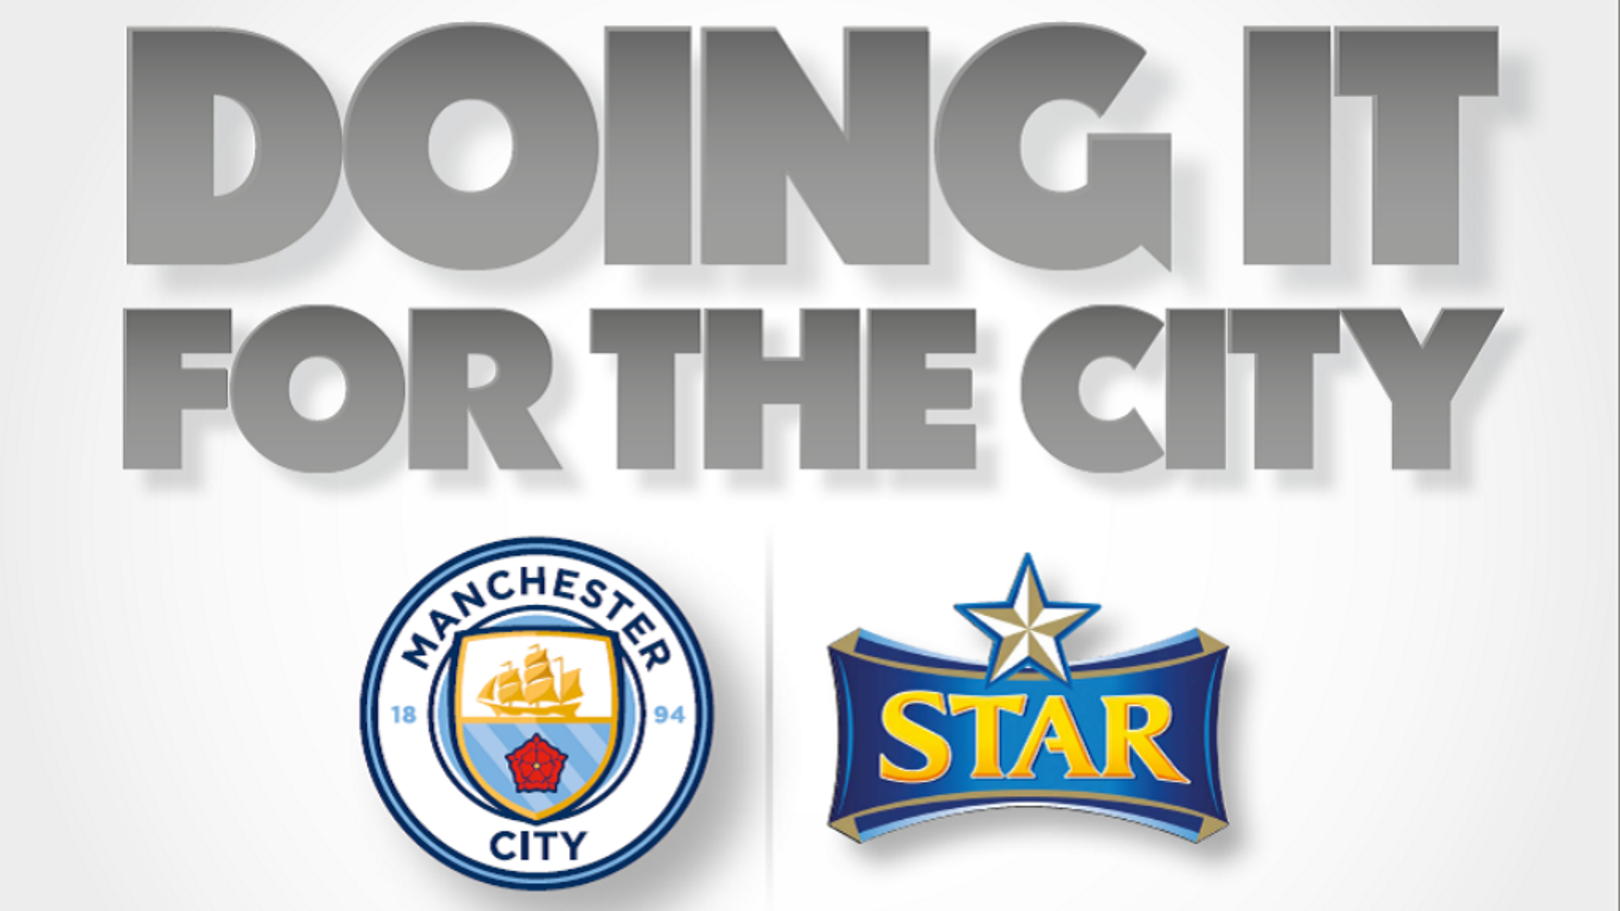 Manchester City and Star sign partnership